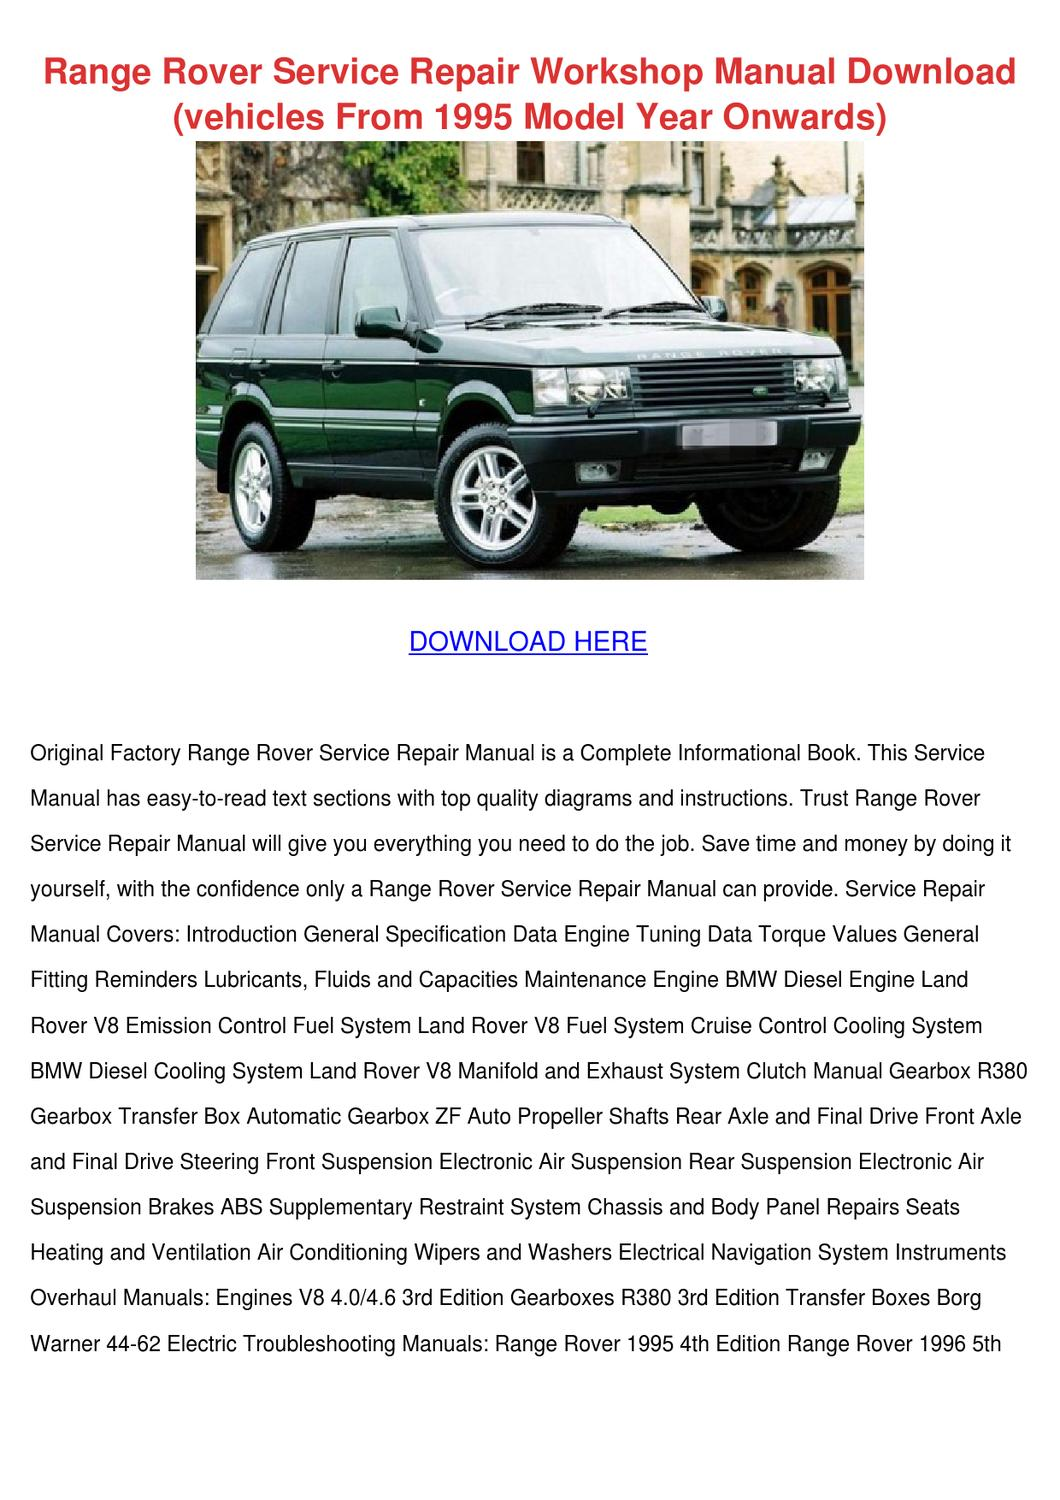 Land Rover Range Rover Workshop Service Repair Manual By Manual Guide